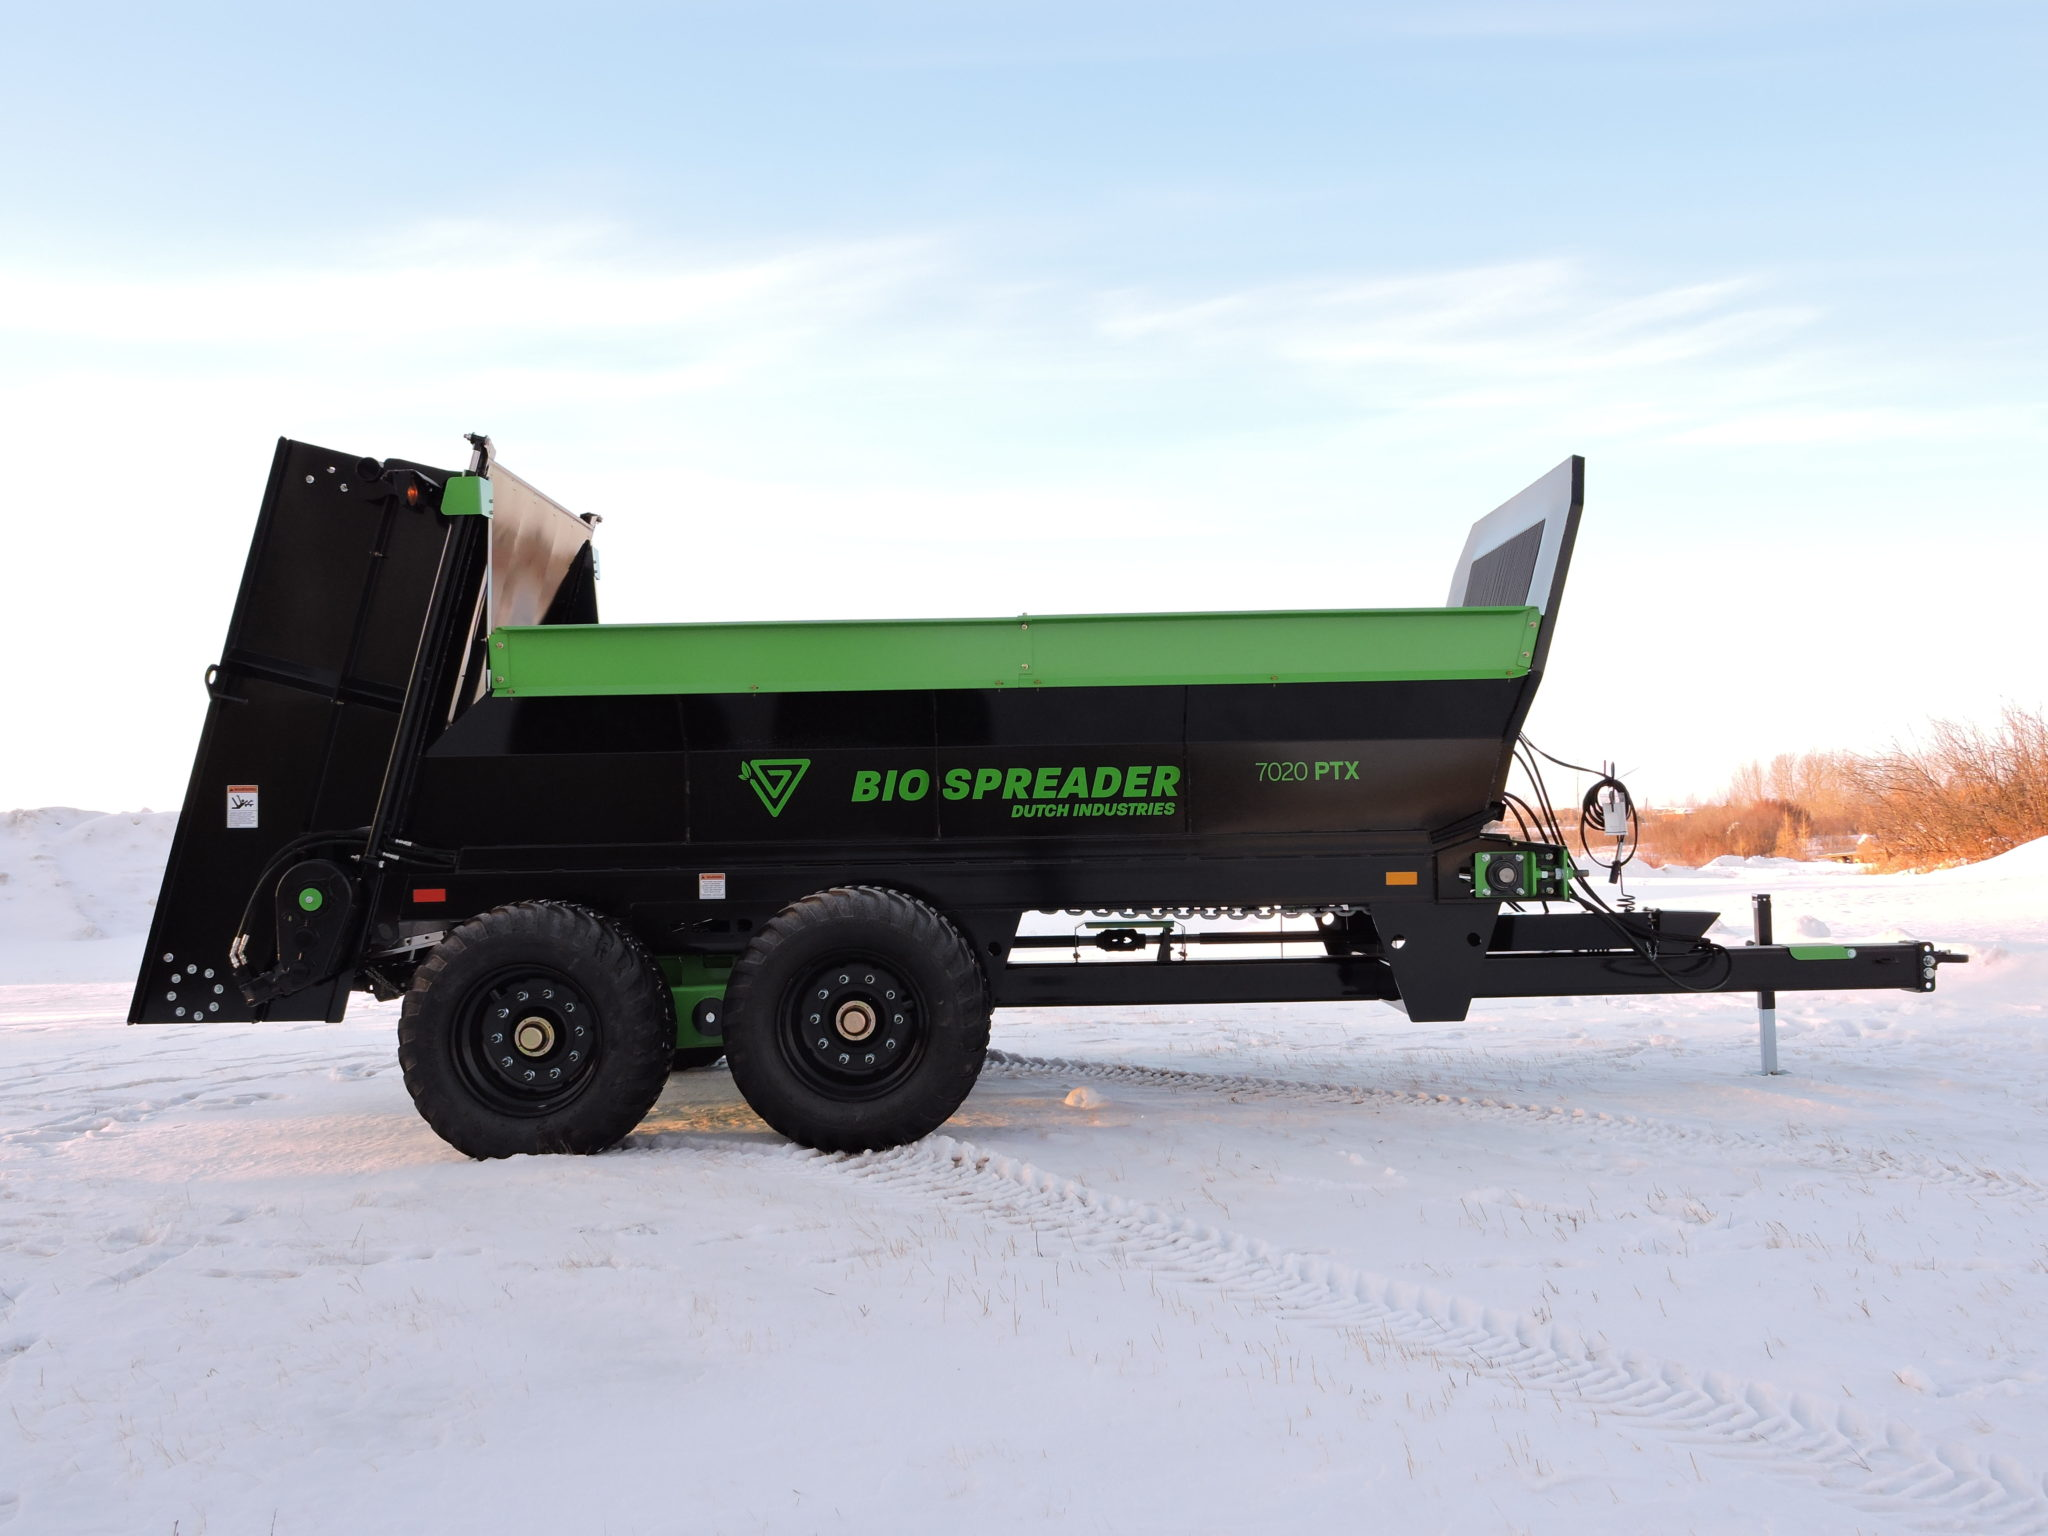 BioSpreader Manure Spreader has Smooth Ride